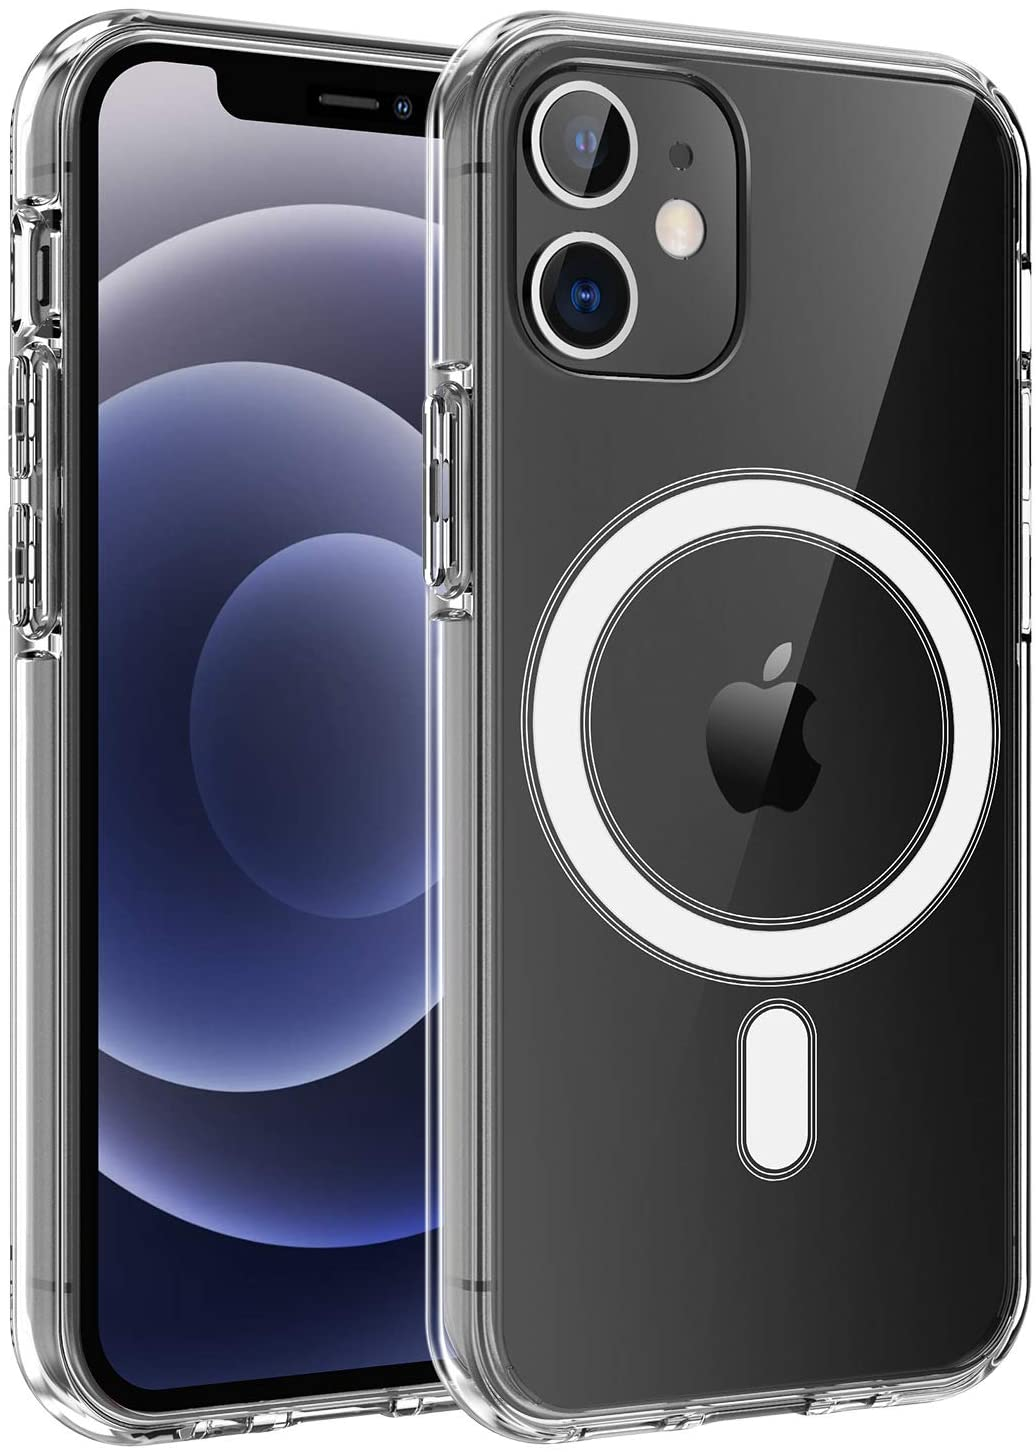 HVDI Clear Magnetic Case for iPhone 11 Pro Max with Mag-Safe Wireless Charging,Soft Silicone TPU Bumper Cover,Thin Slim Fit Hard Back Shockproof Anti-Yellow Protective Case for iPhone 11 Pro Max 6.5In